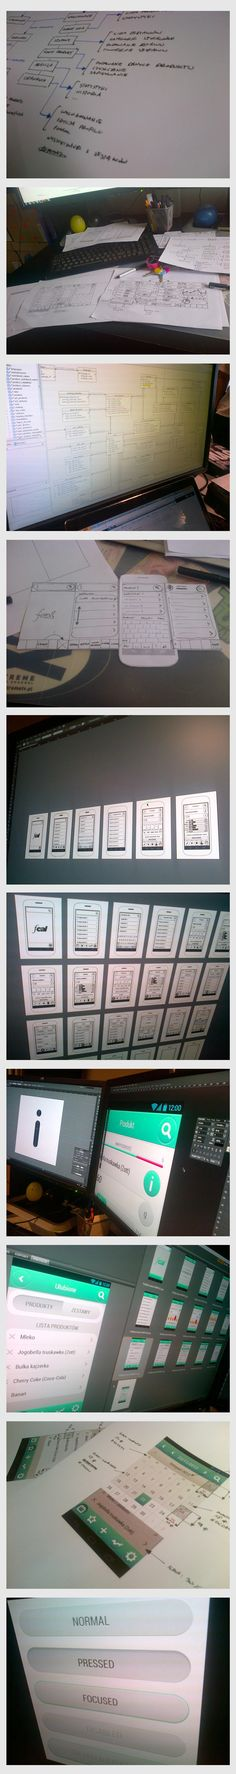 fcal - mobile app design process #UX